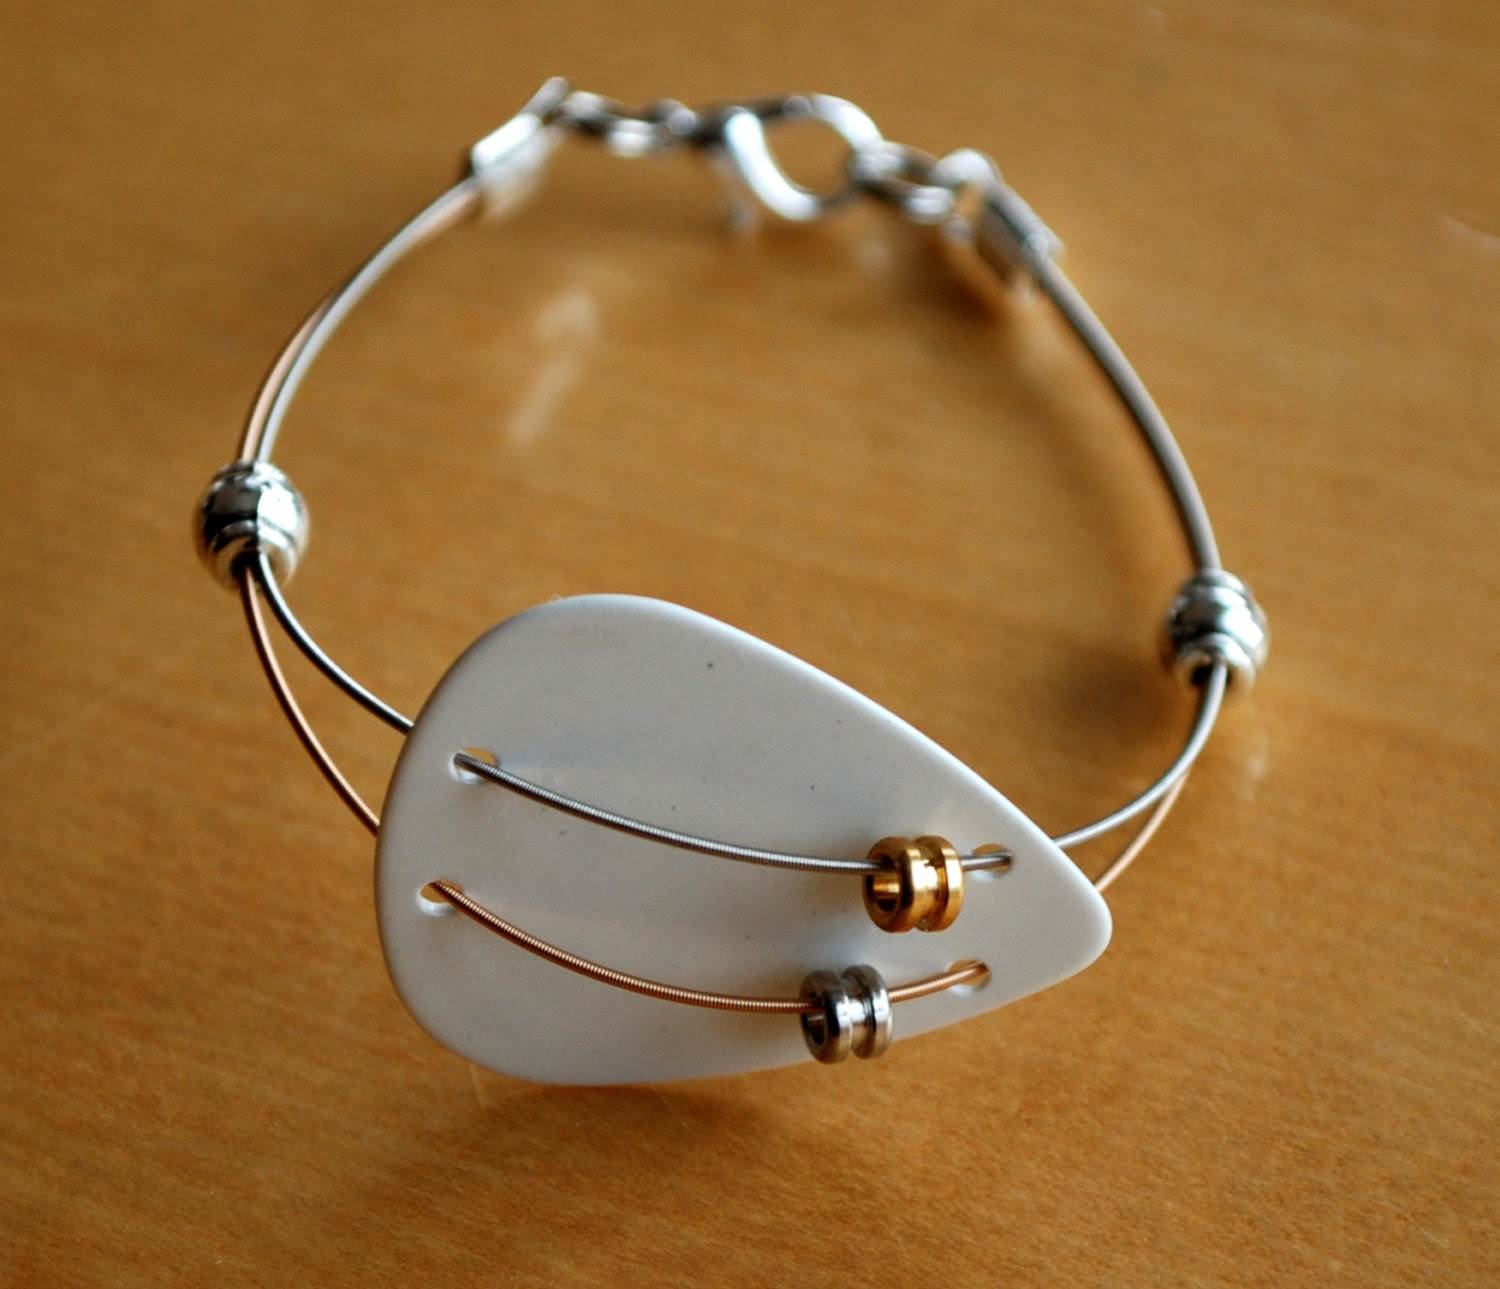 Guitar Pick and Guitar String Bracelet - Dual Thin Strings and Pewter Beads - Sarah - Saratude